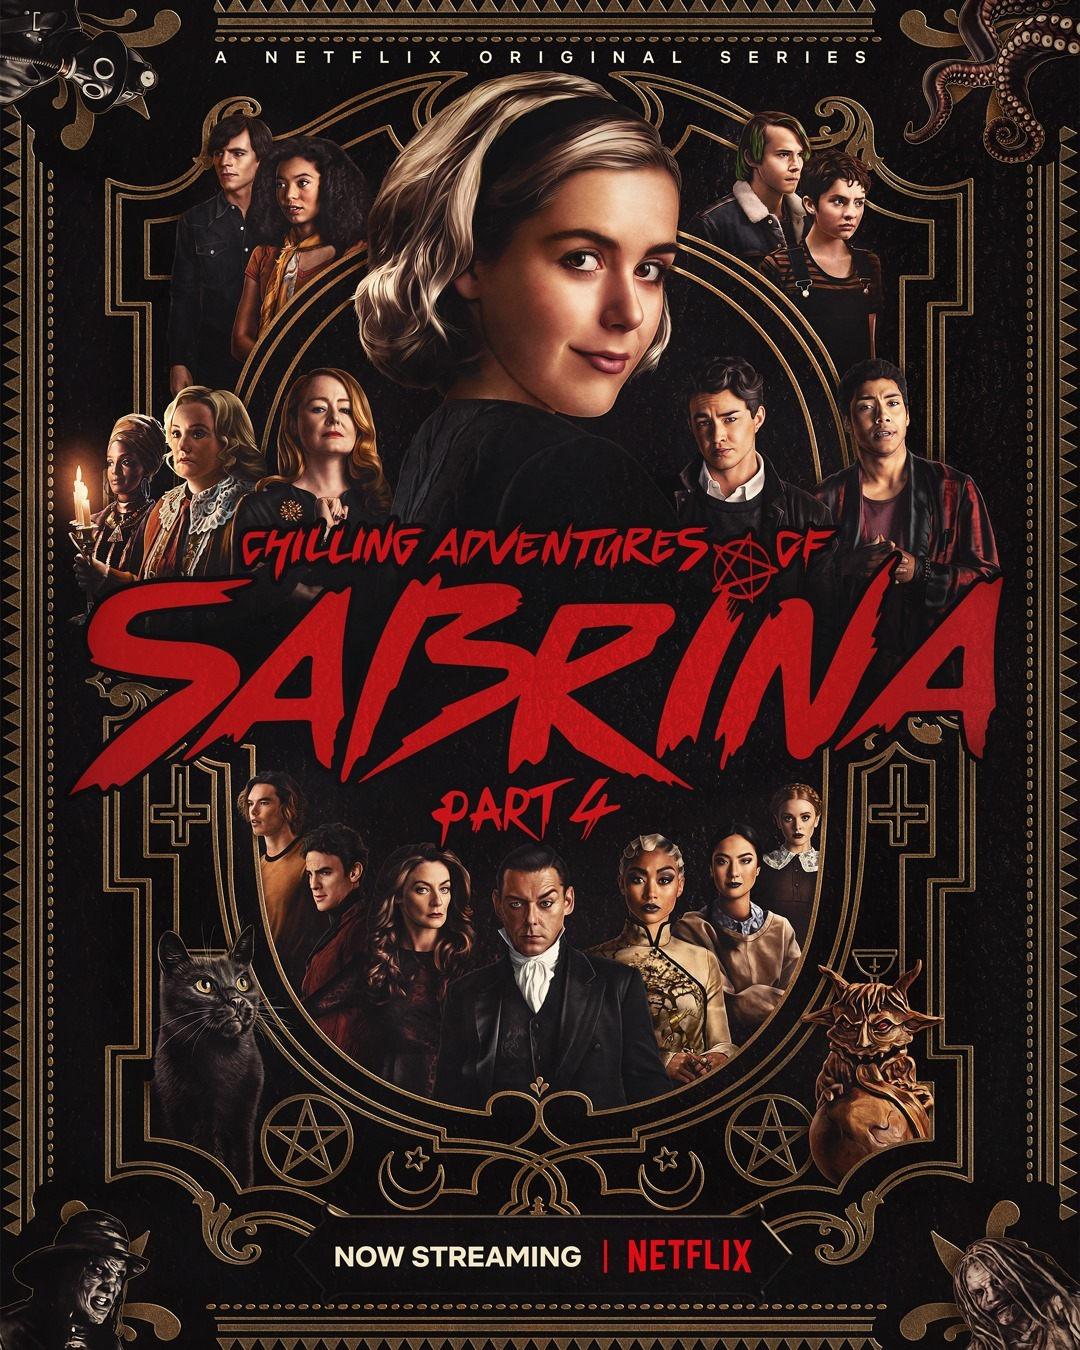 Chilling%20Adventures%20of%20Sabrina